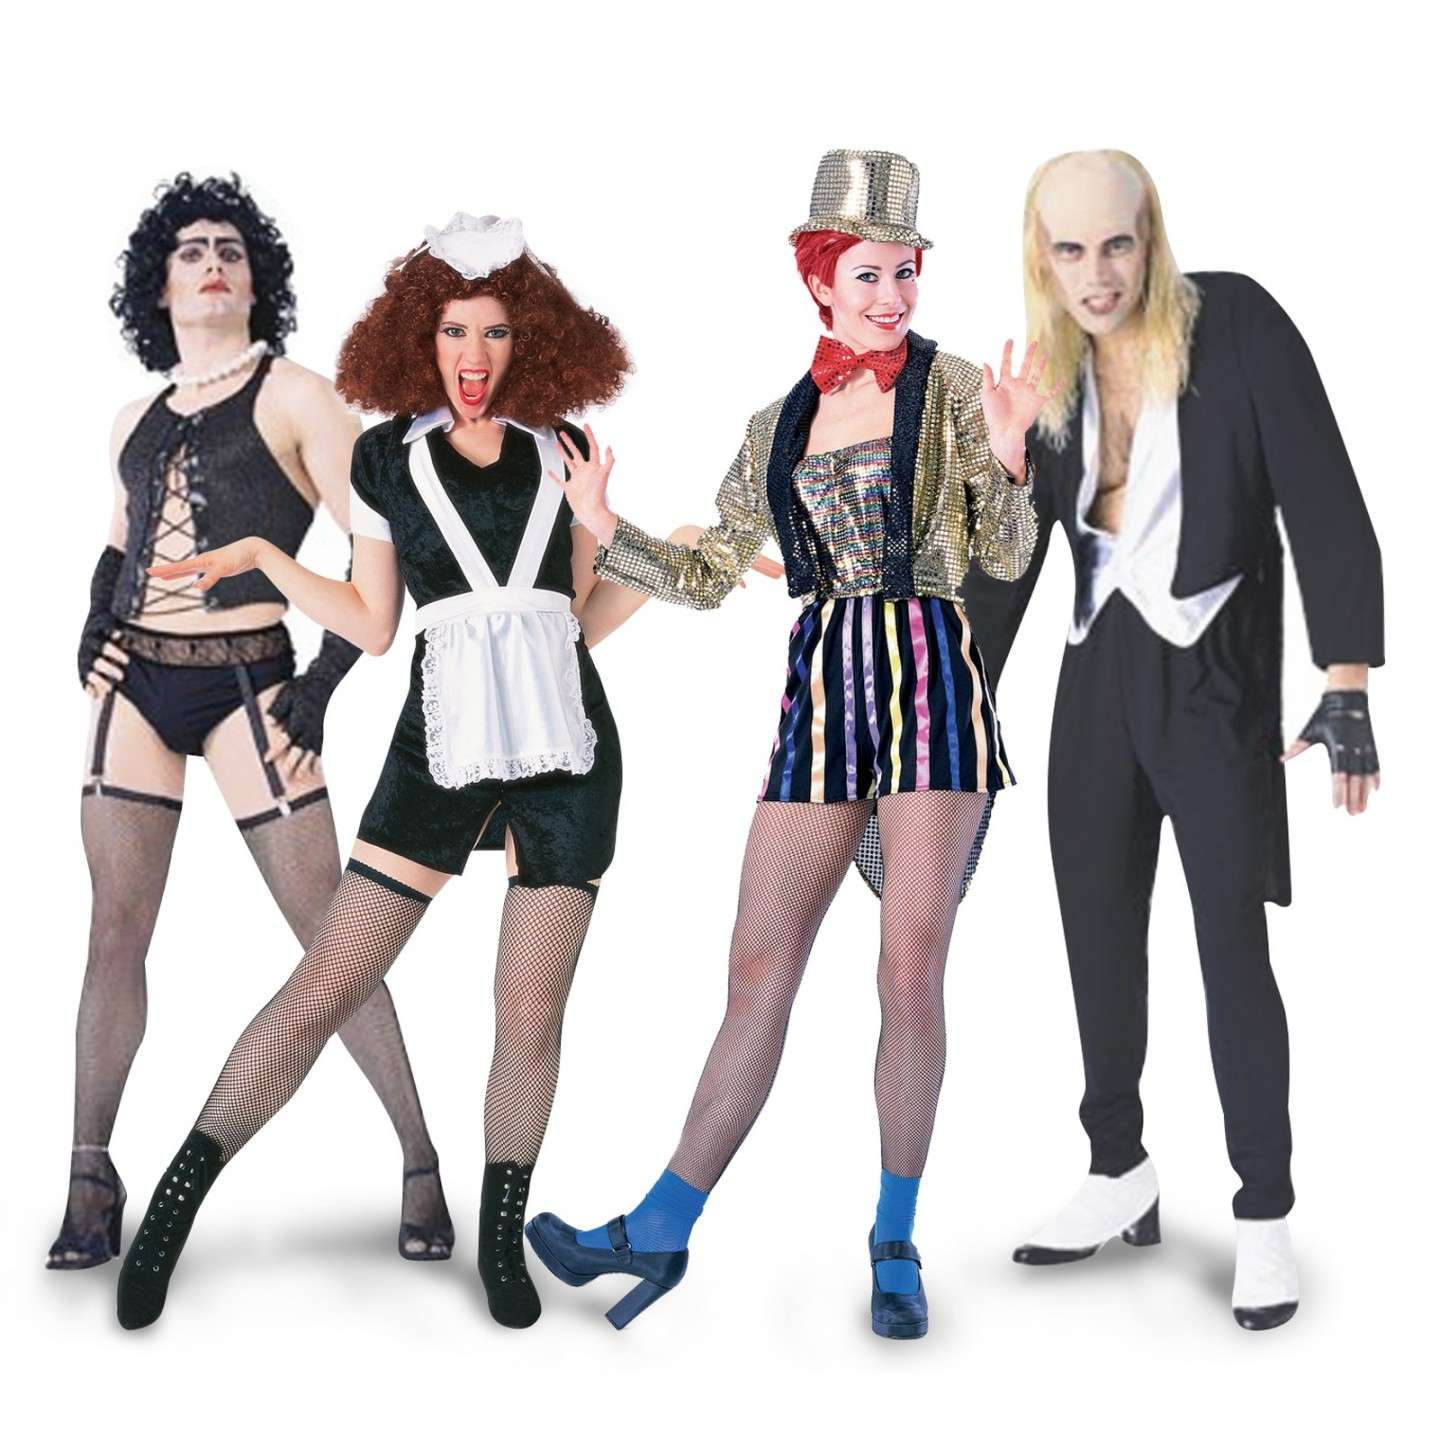 Acconciature del Rocky Horror Picture Show